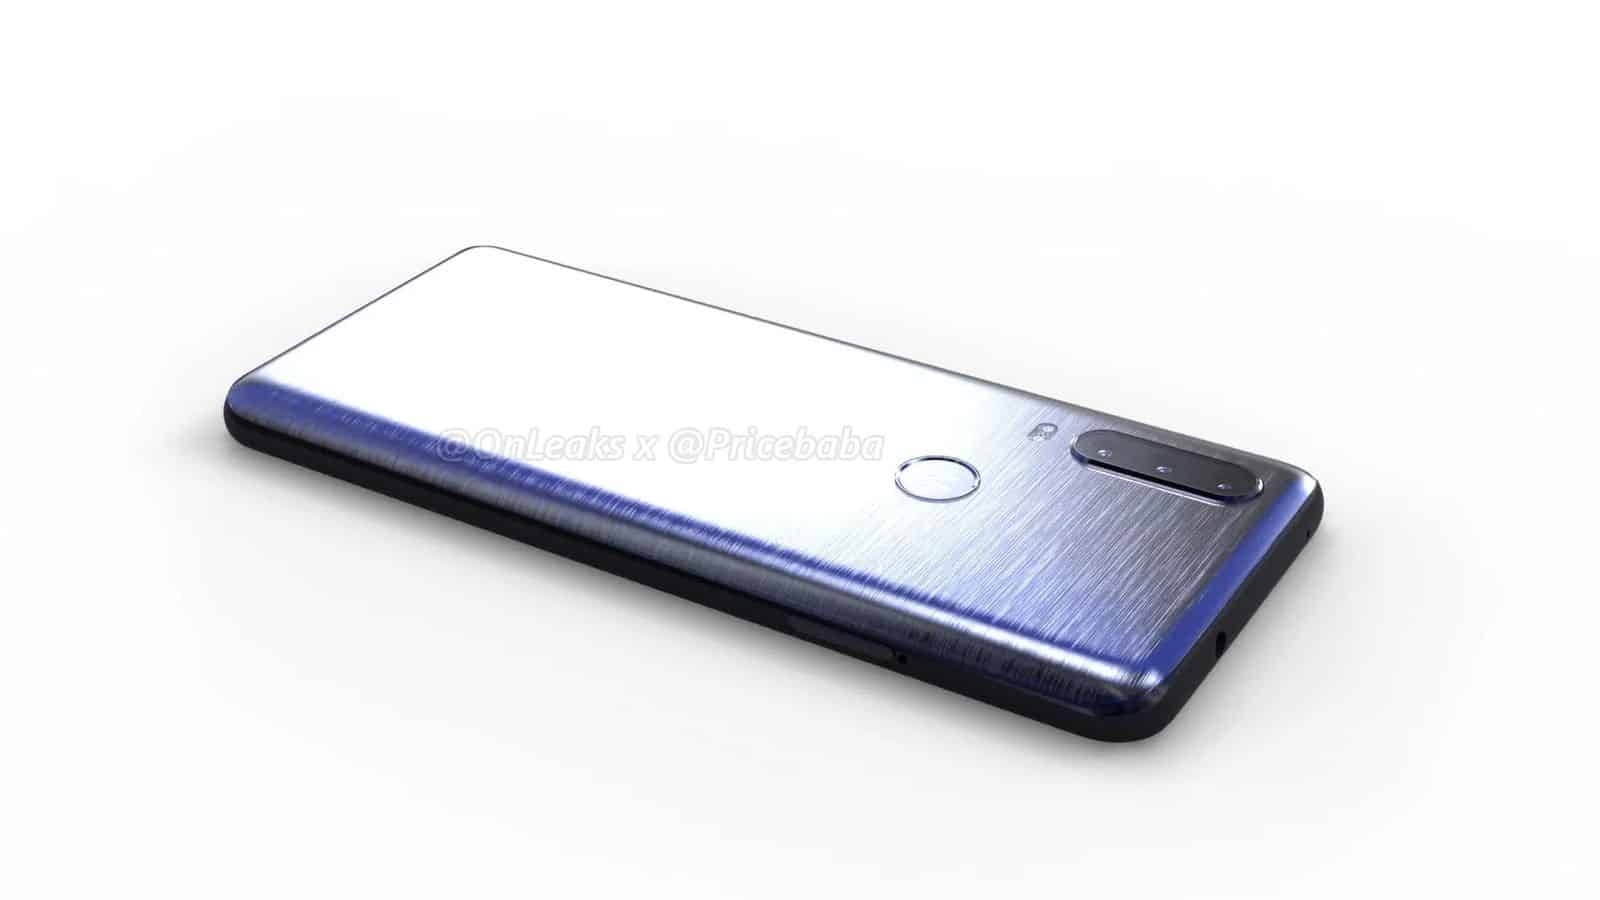 Motorola P40 Power leak 15